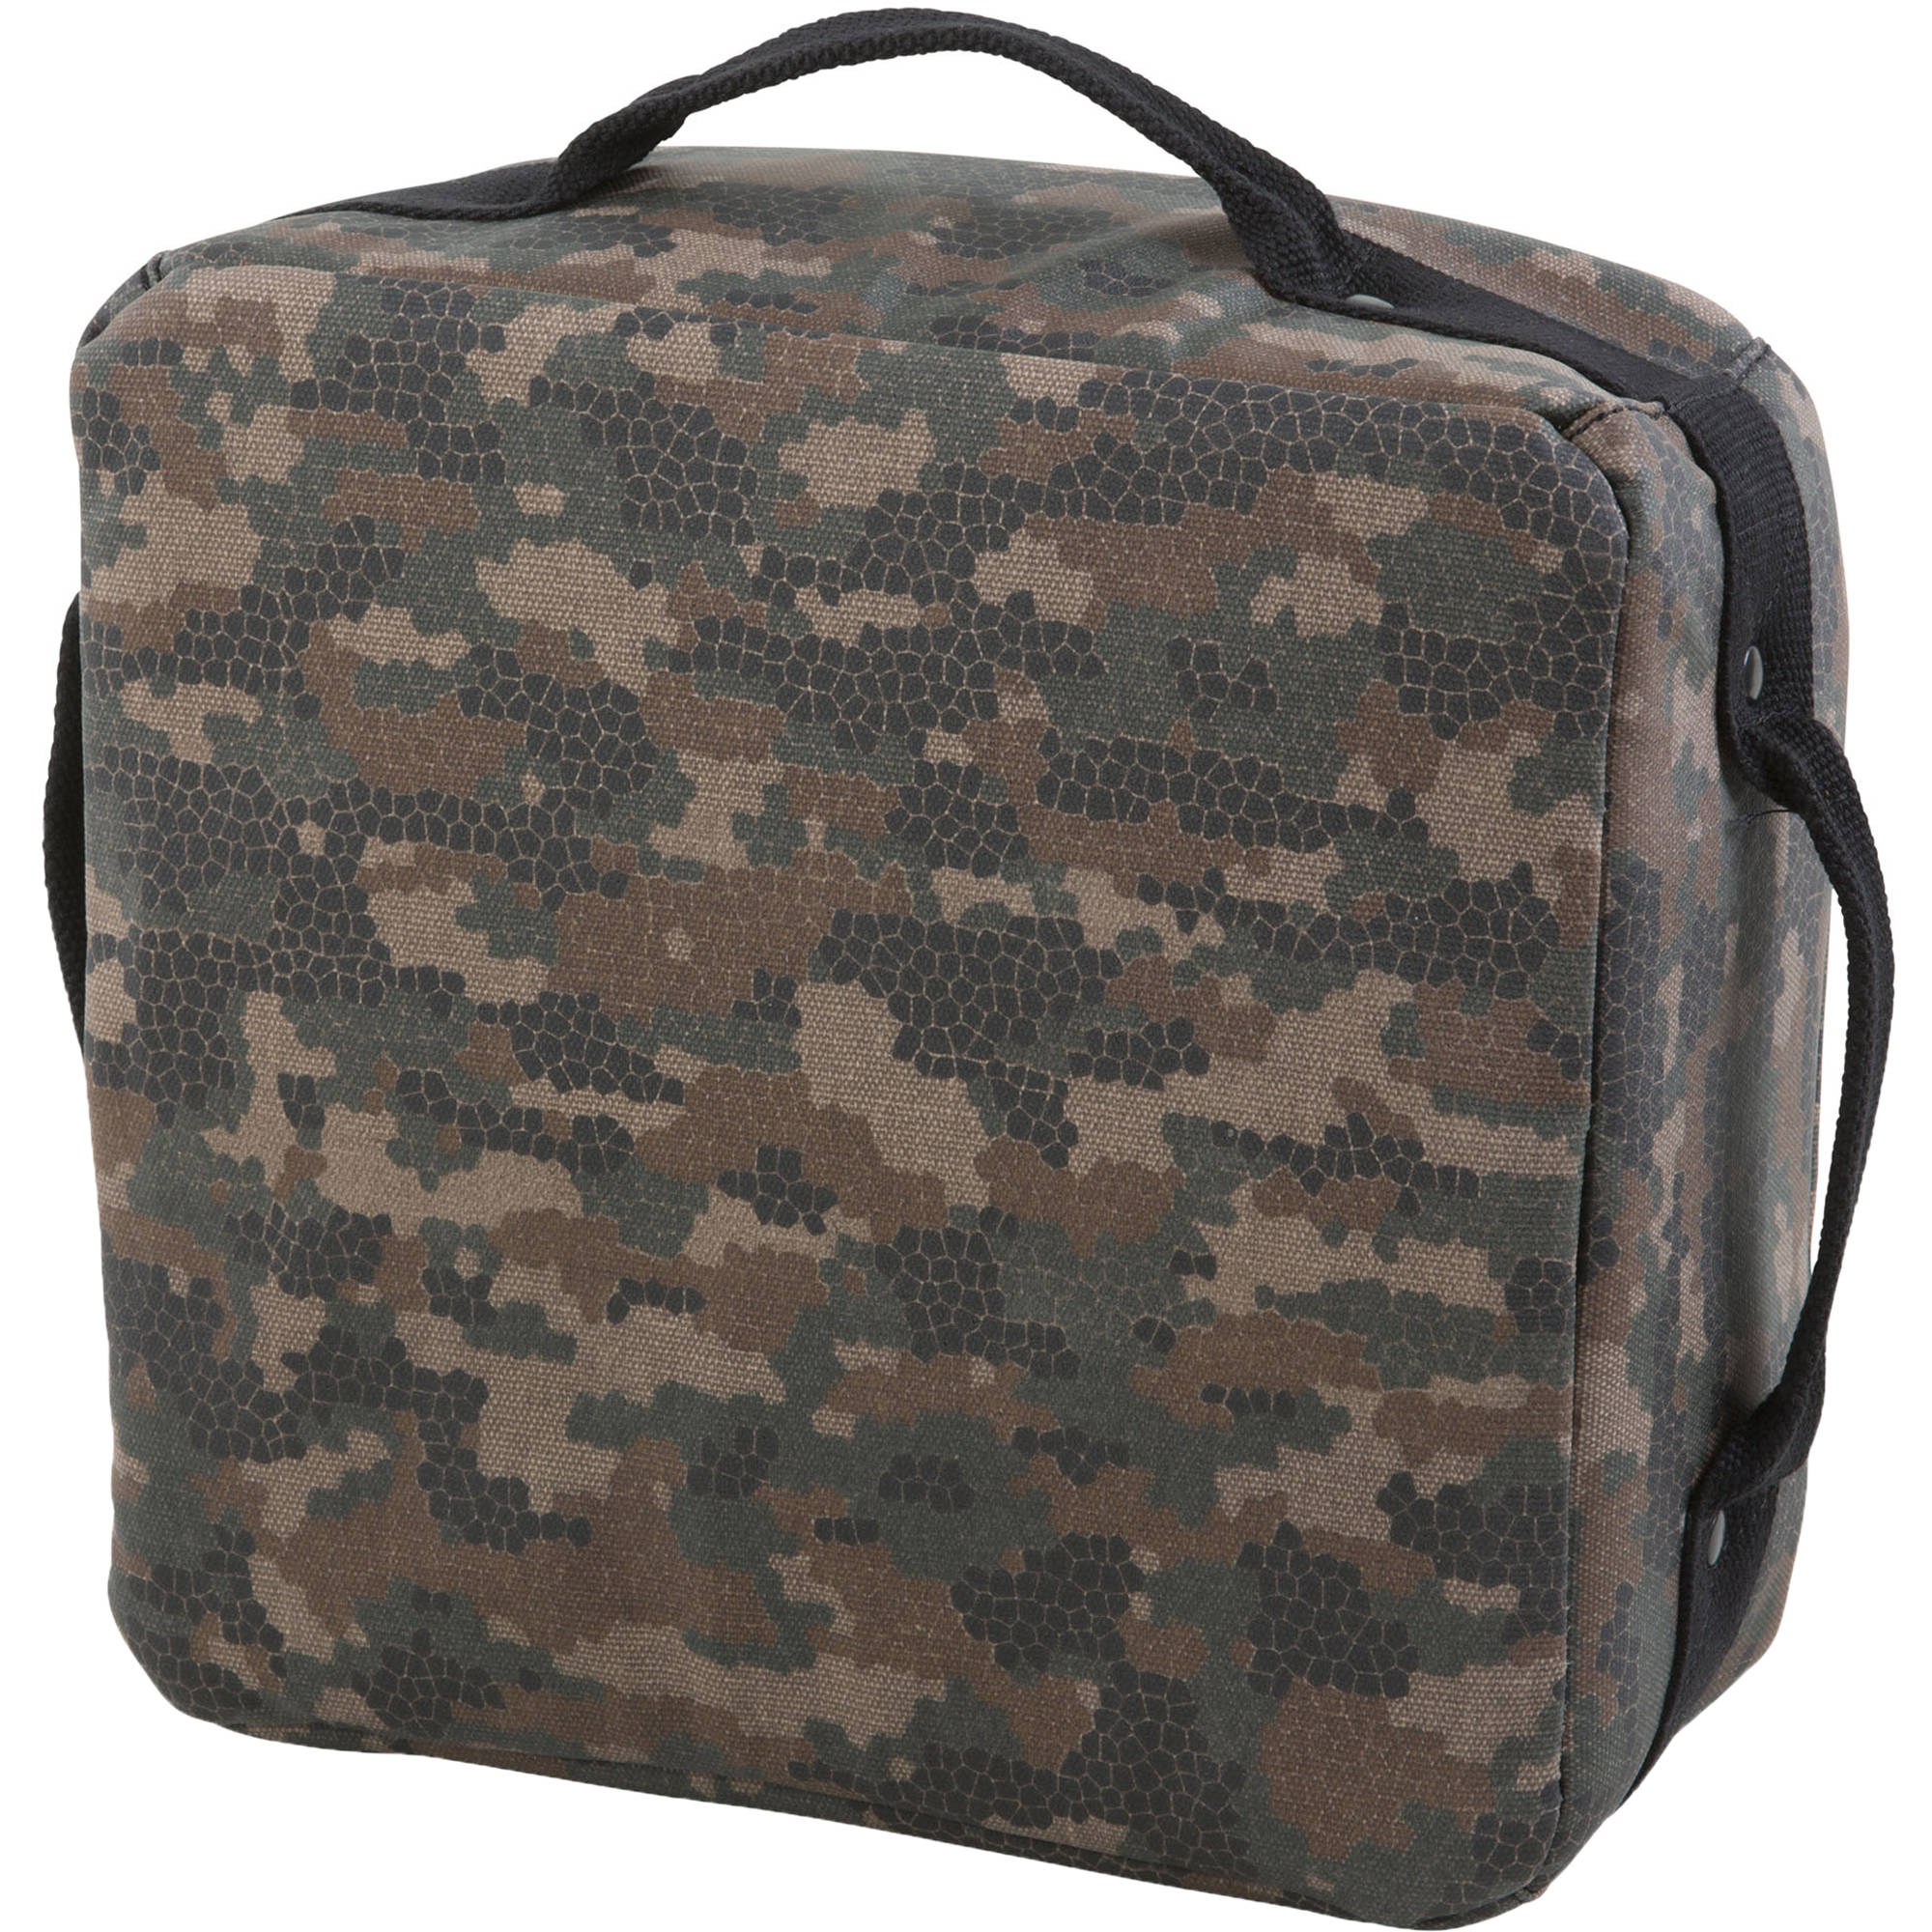 Hunting Supply Tactical 120cm Heavy Gun Slip Bevel Carry Bag Rifle Case Shoulder Pouch Hunting Backpack Bags For Hunting Outdoor Structural Disabilities